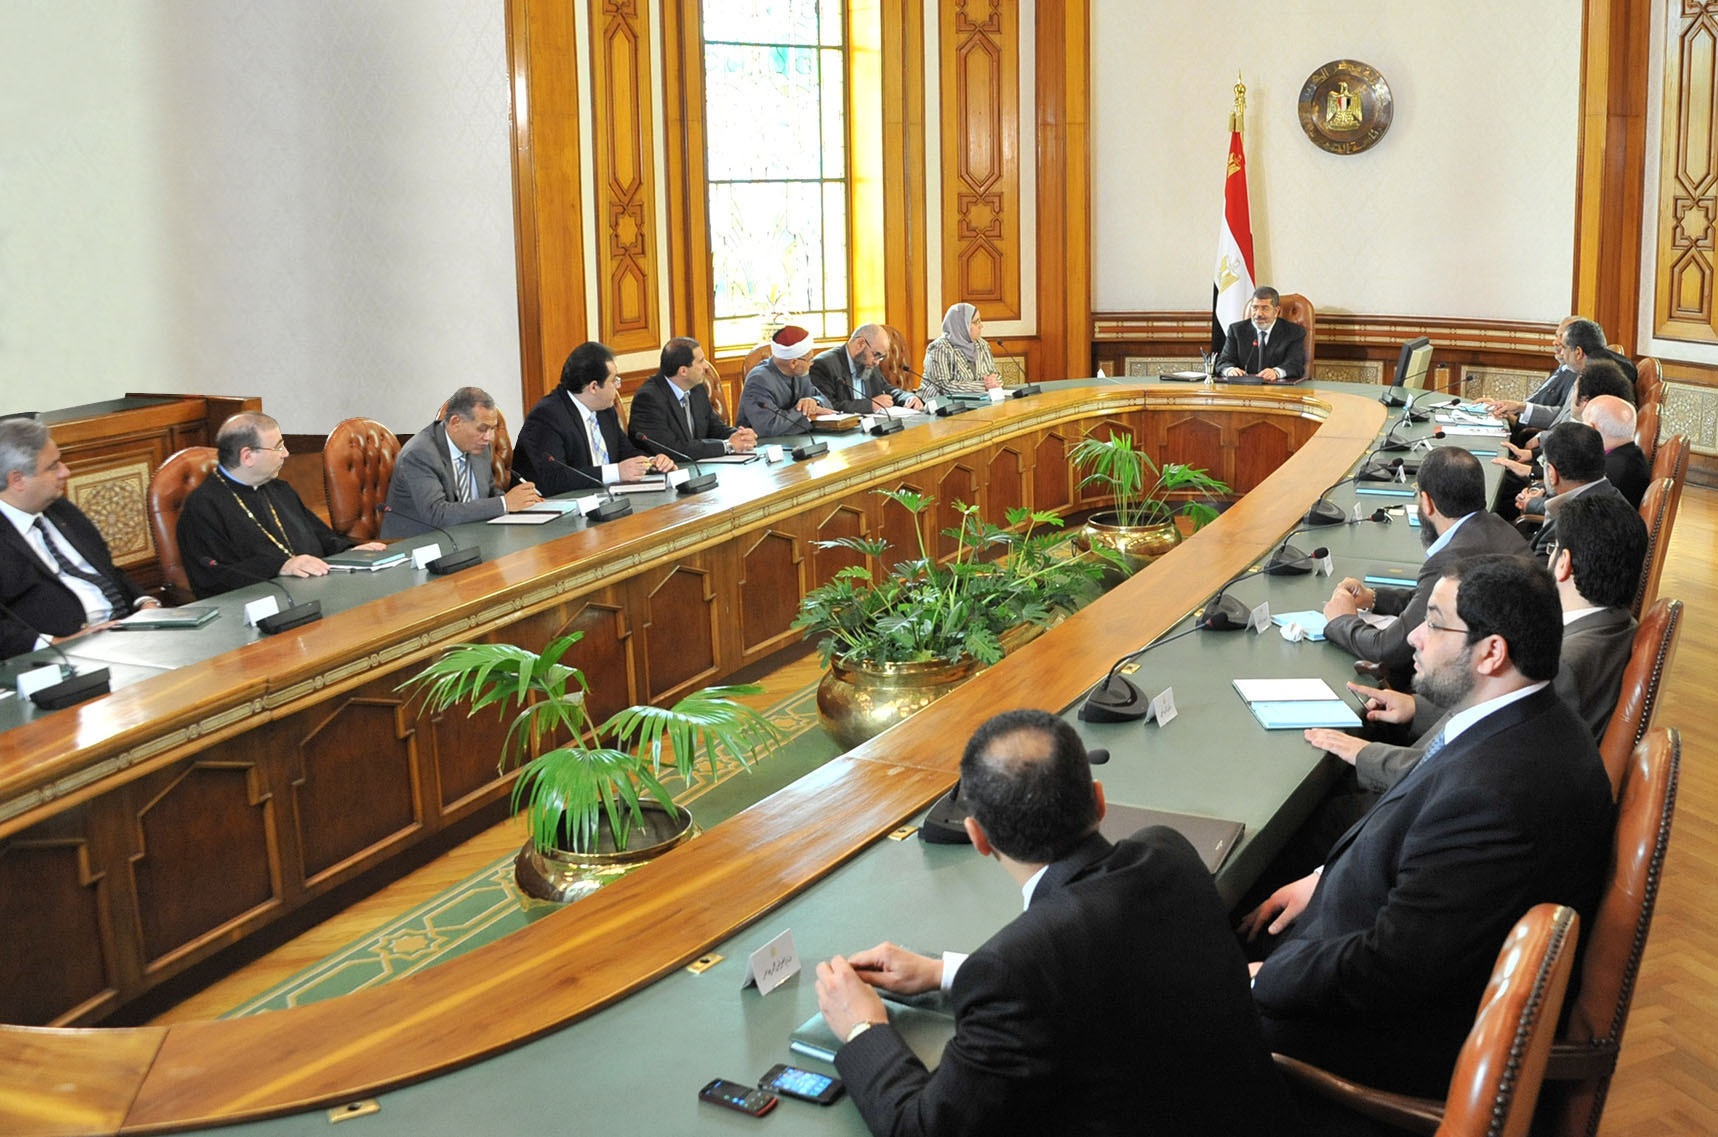 A handout picture released by the Egyptian presidency on 3 June 2013, shows Egyptian President Mohamed Morsi (C top) meeting with political figures who discuss sabotaging Ethiopia's dam project on the Blue Nile. (Photo: Egyptian Presidency)